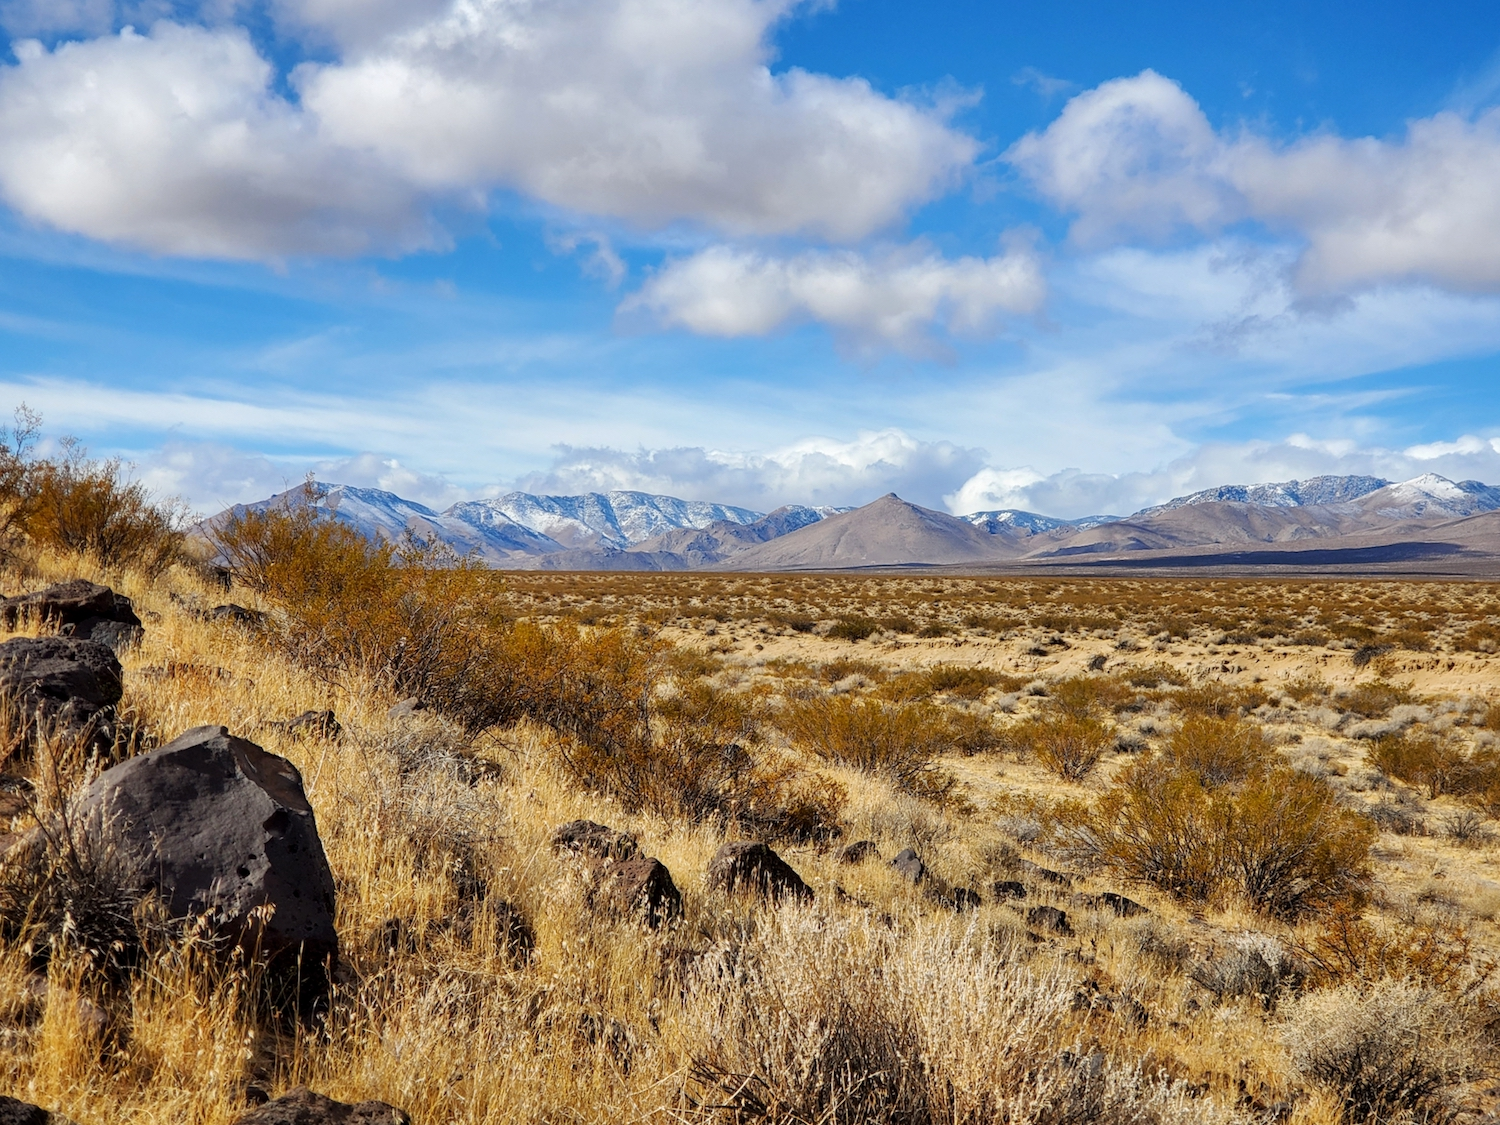 A section of the desert that looks out over snowy peaks